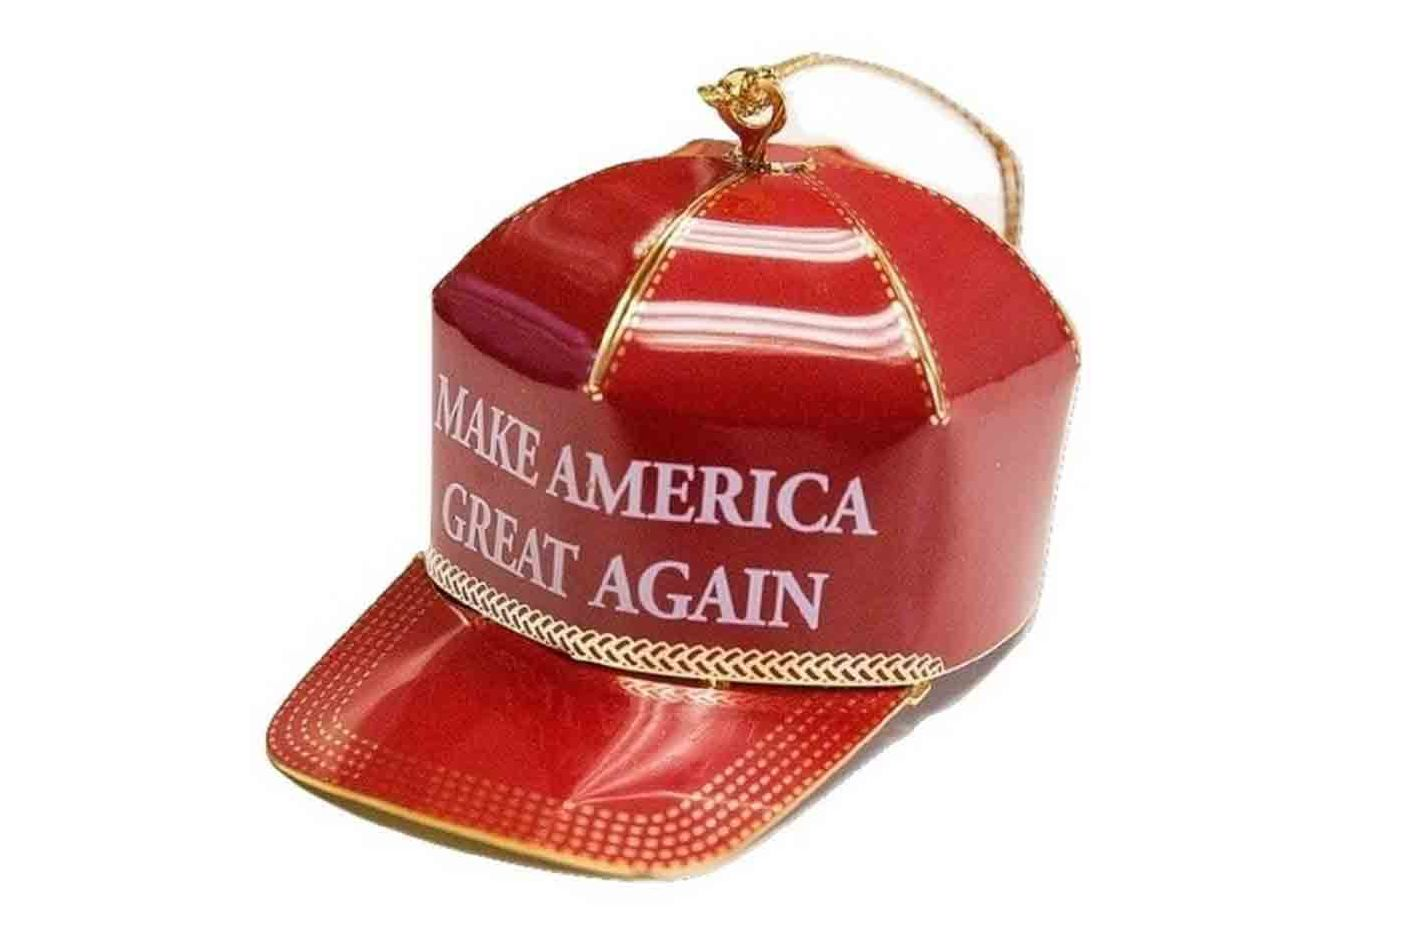 amazon reviewers dislike this trump christmas tree ornament